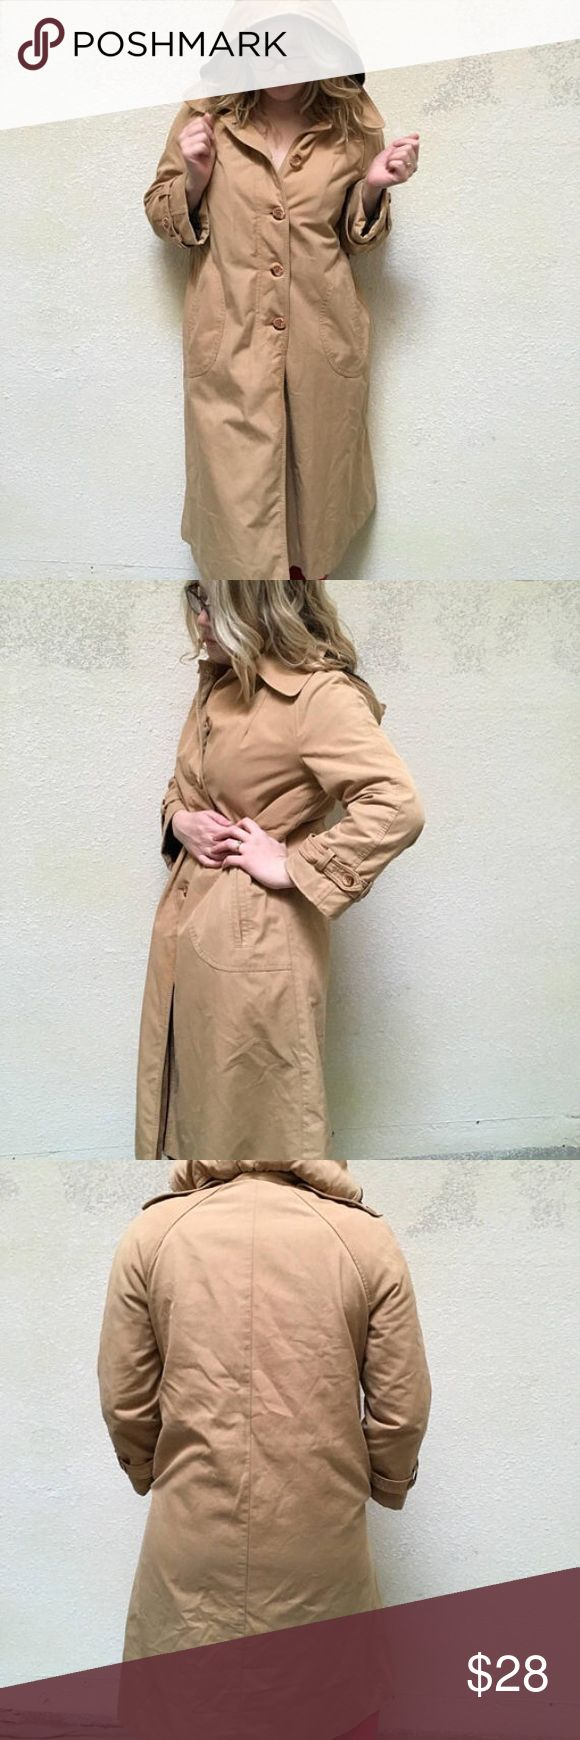 "Vintage lined tan trench coat. This fabulous tan trench was made by the brand Forecaster of Boston in the 1970's. It features fake fur plushy lining, a removeable hood, and lots of cozy 1970's goodness. It is a size 9/10-though check the measurements given below to ensure a proper fit. It is in good condition, besides one button which had to be replaced by a very similar looking button. Is not an obvious flaw. It has been gently laundered. Measurements 40"" bust 43"" long Vintage Jackets…"